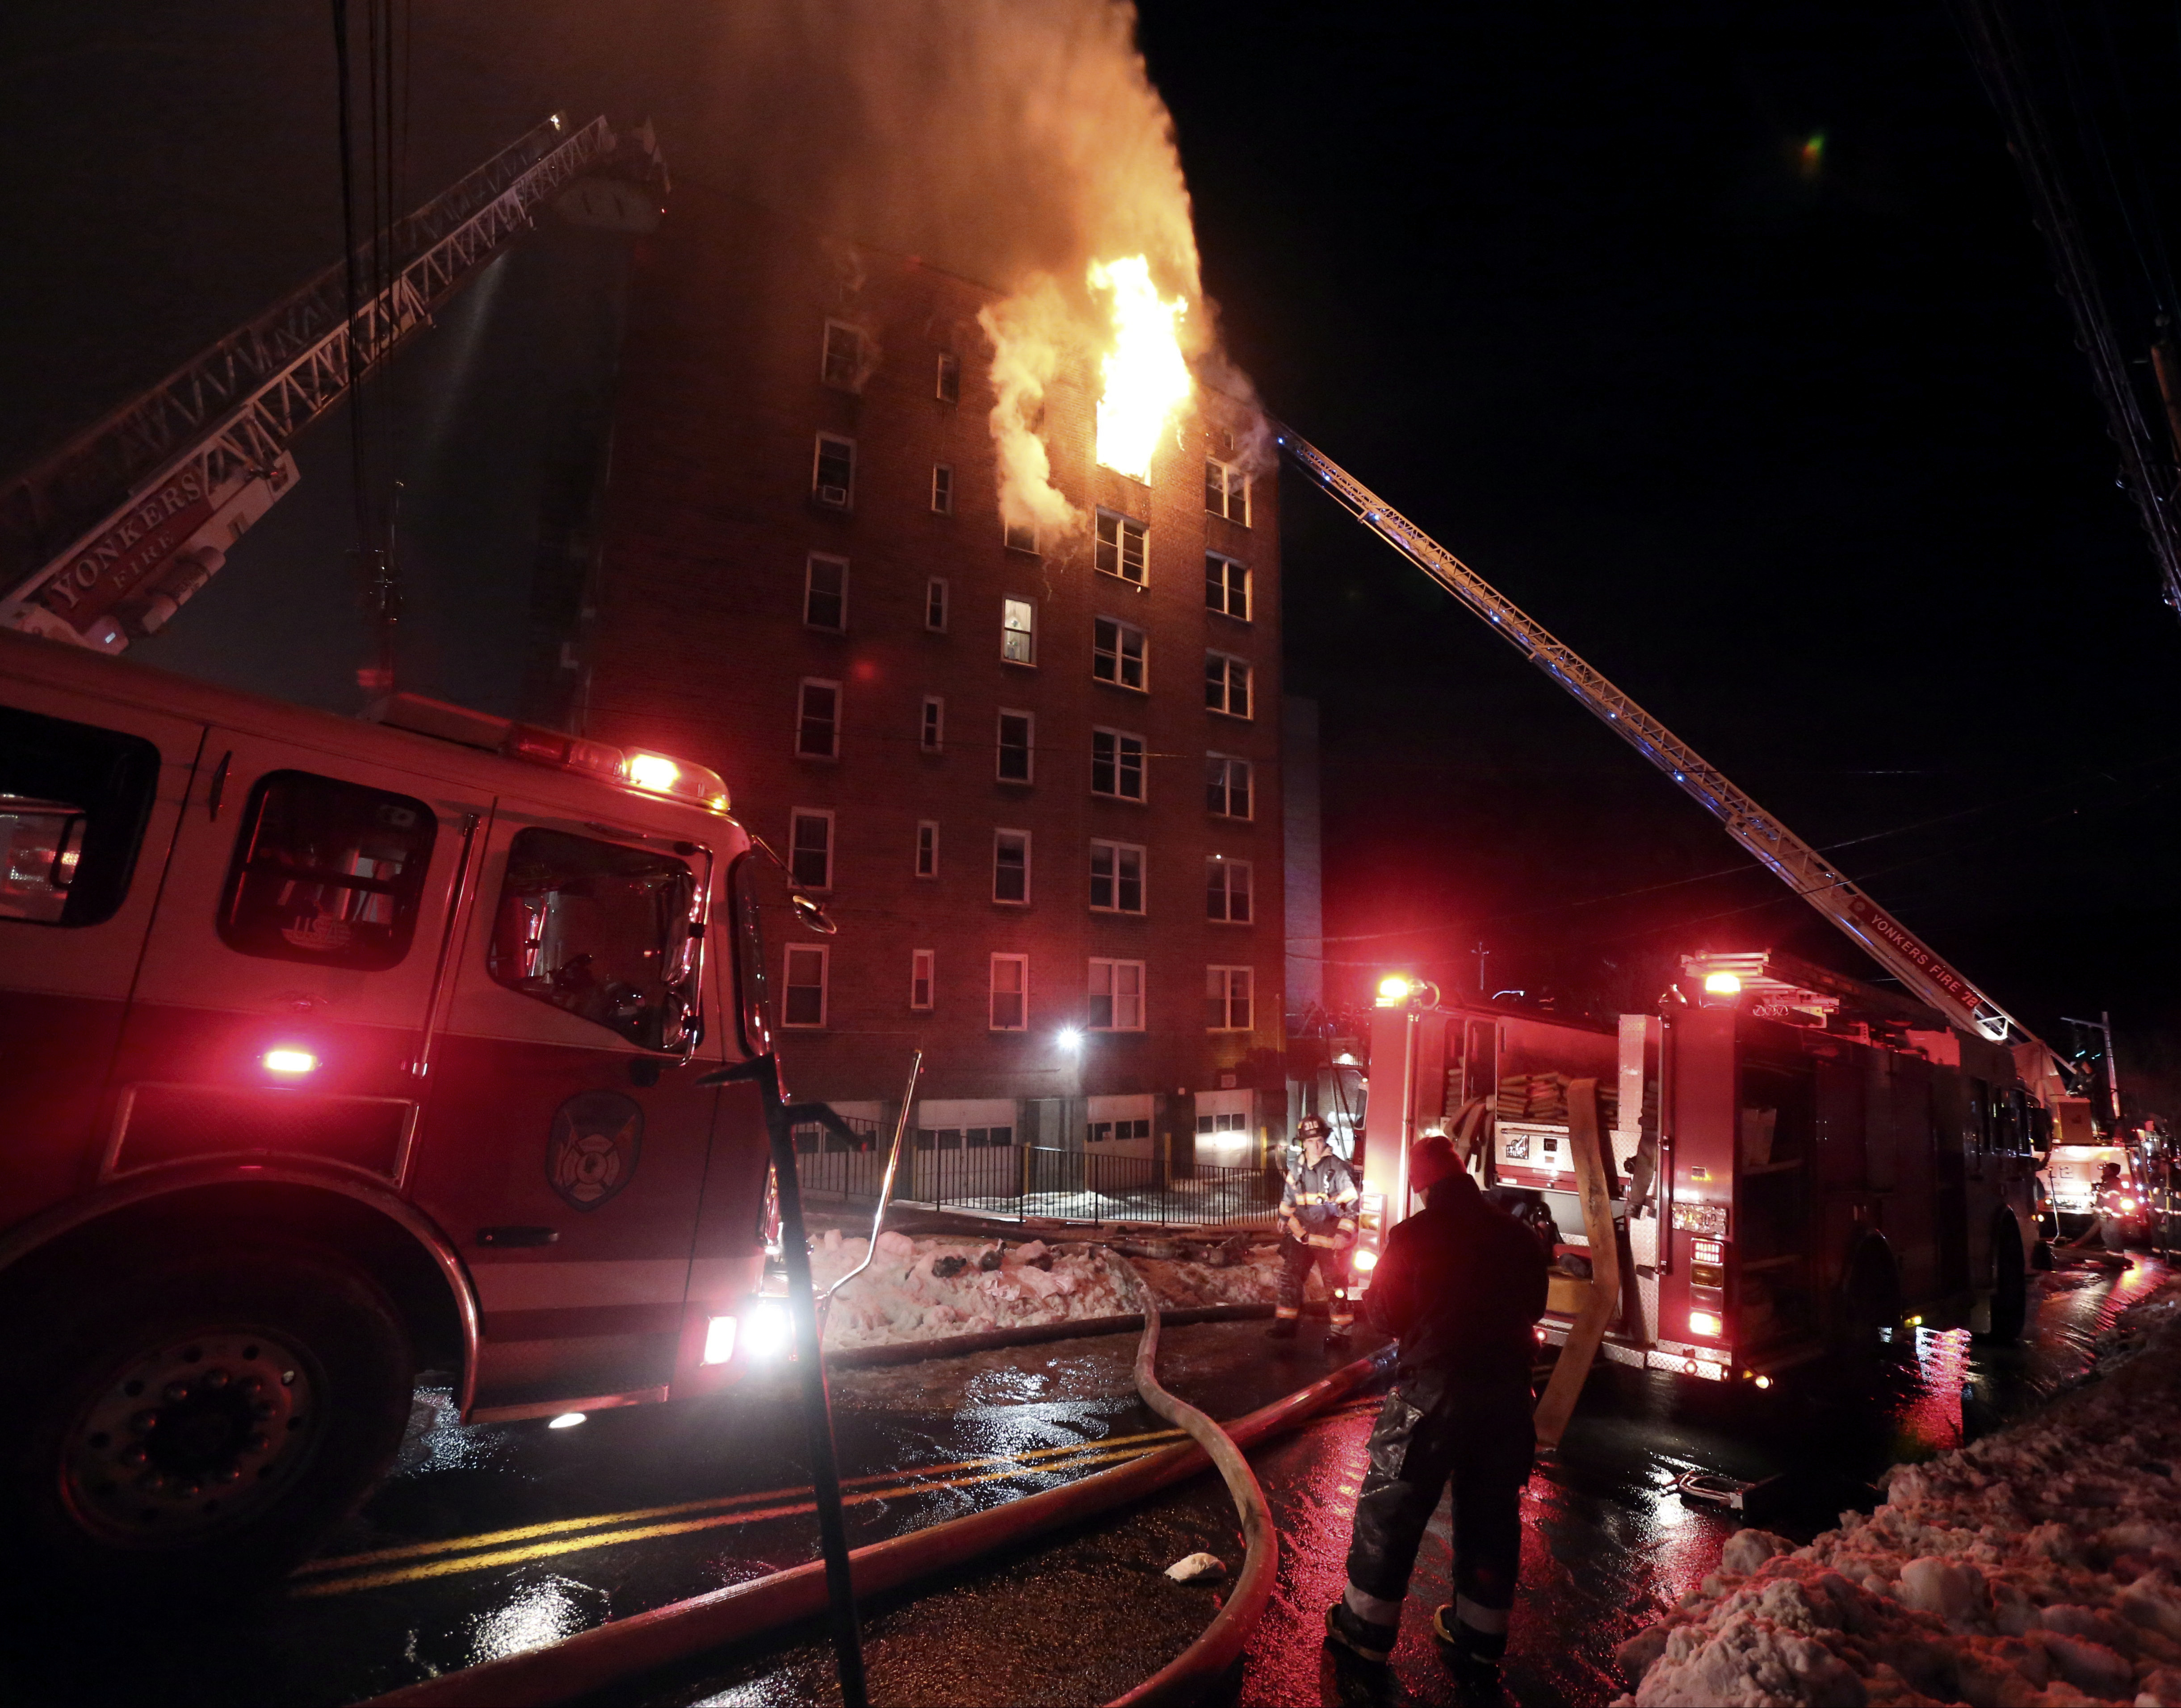 Firefighters battle a fire on the top floor of an apartment building in Yonkers, N.Y., on March 15, 2017. (Mark Vergari/The Journal News via AP)